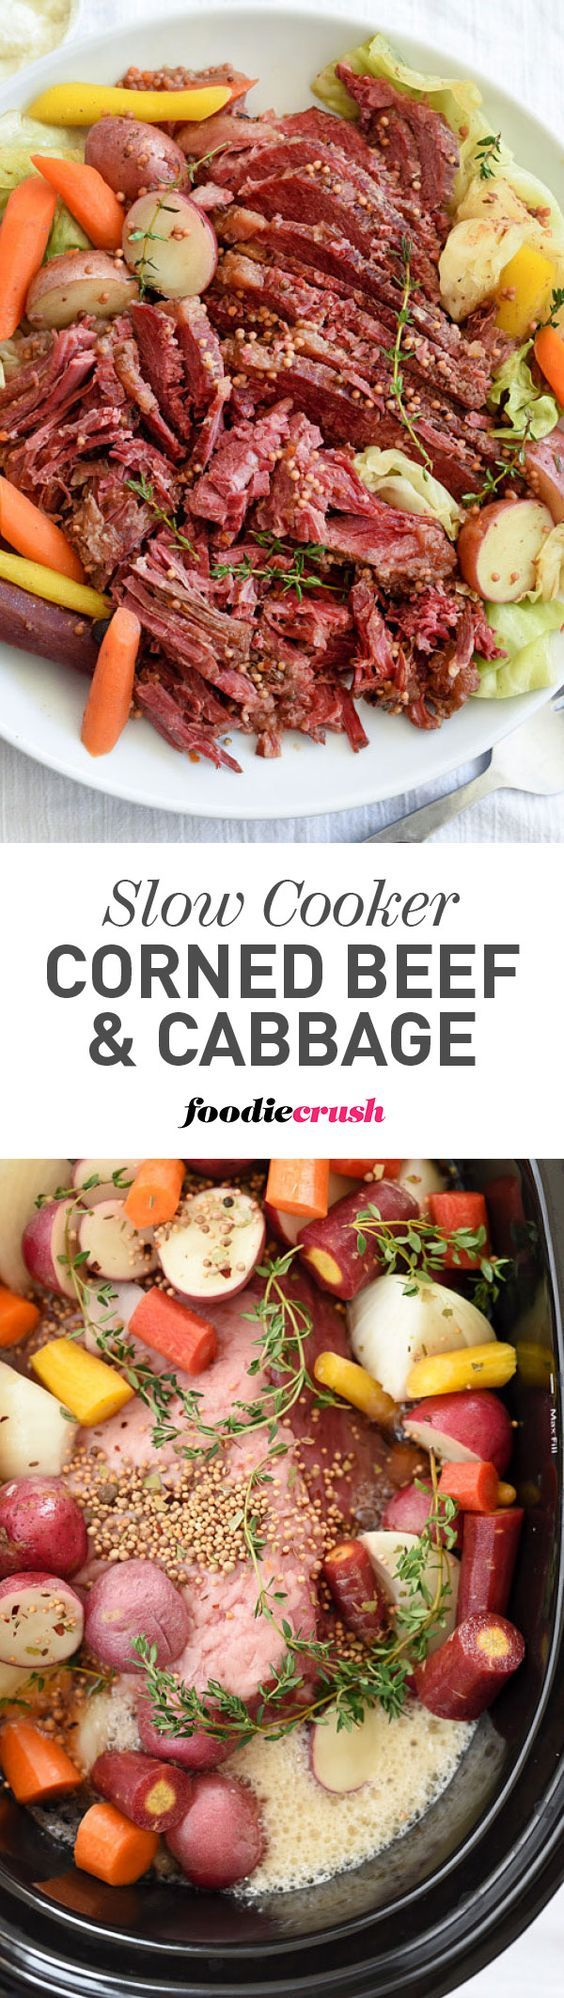 This slow cooker corned beef creates tender, fall-apart chunks of beef thanks to braising in beer and vegetables for an unbelievably easy one-pot dinner | foodiecrush.com #cornedbeef #stpatricksday #crockpot